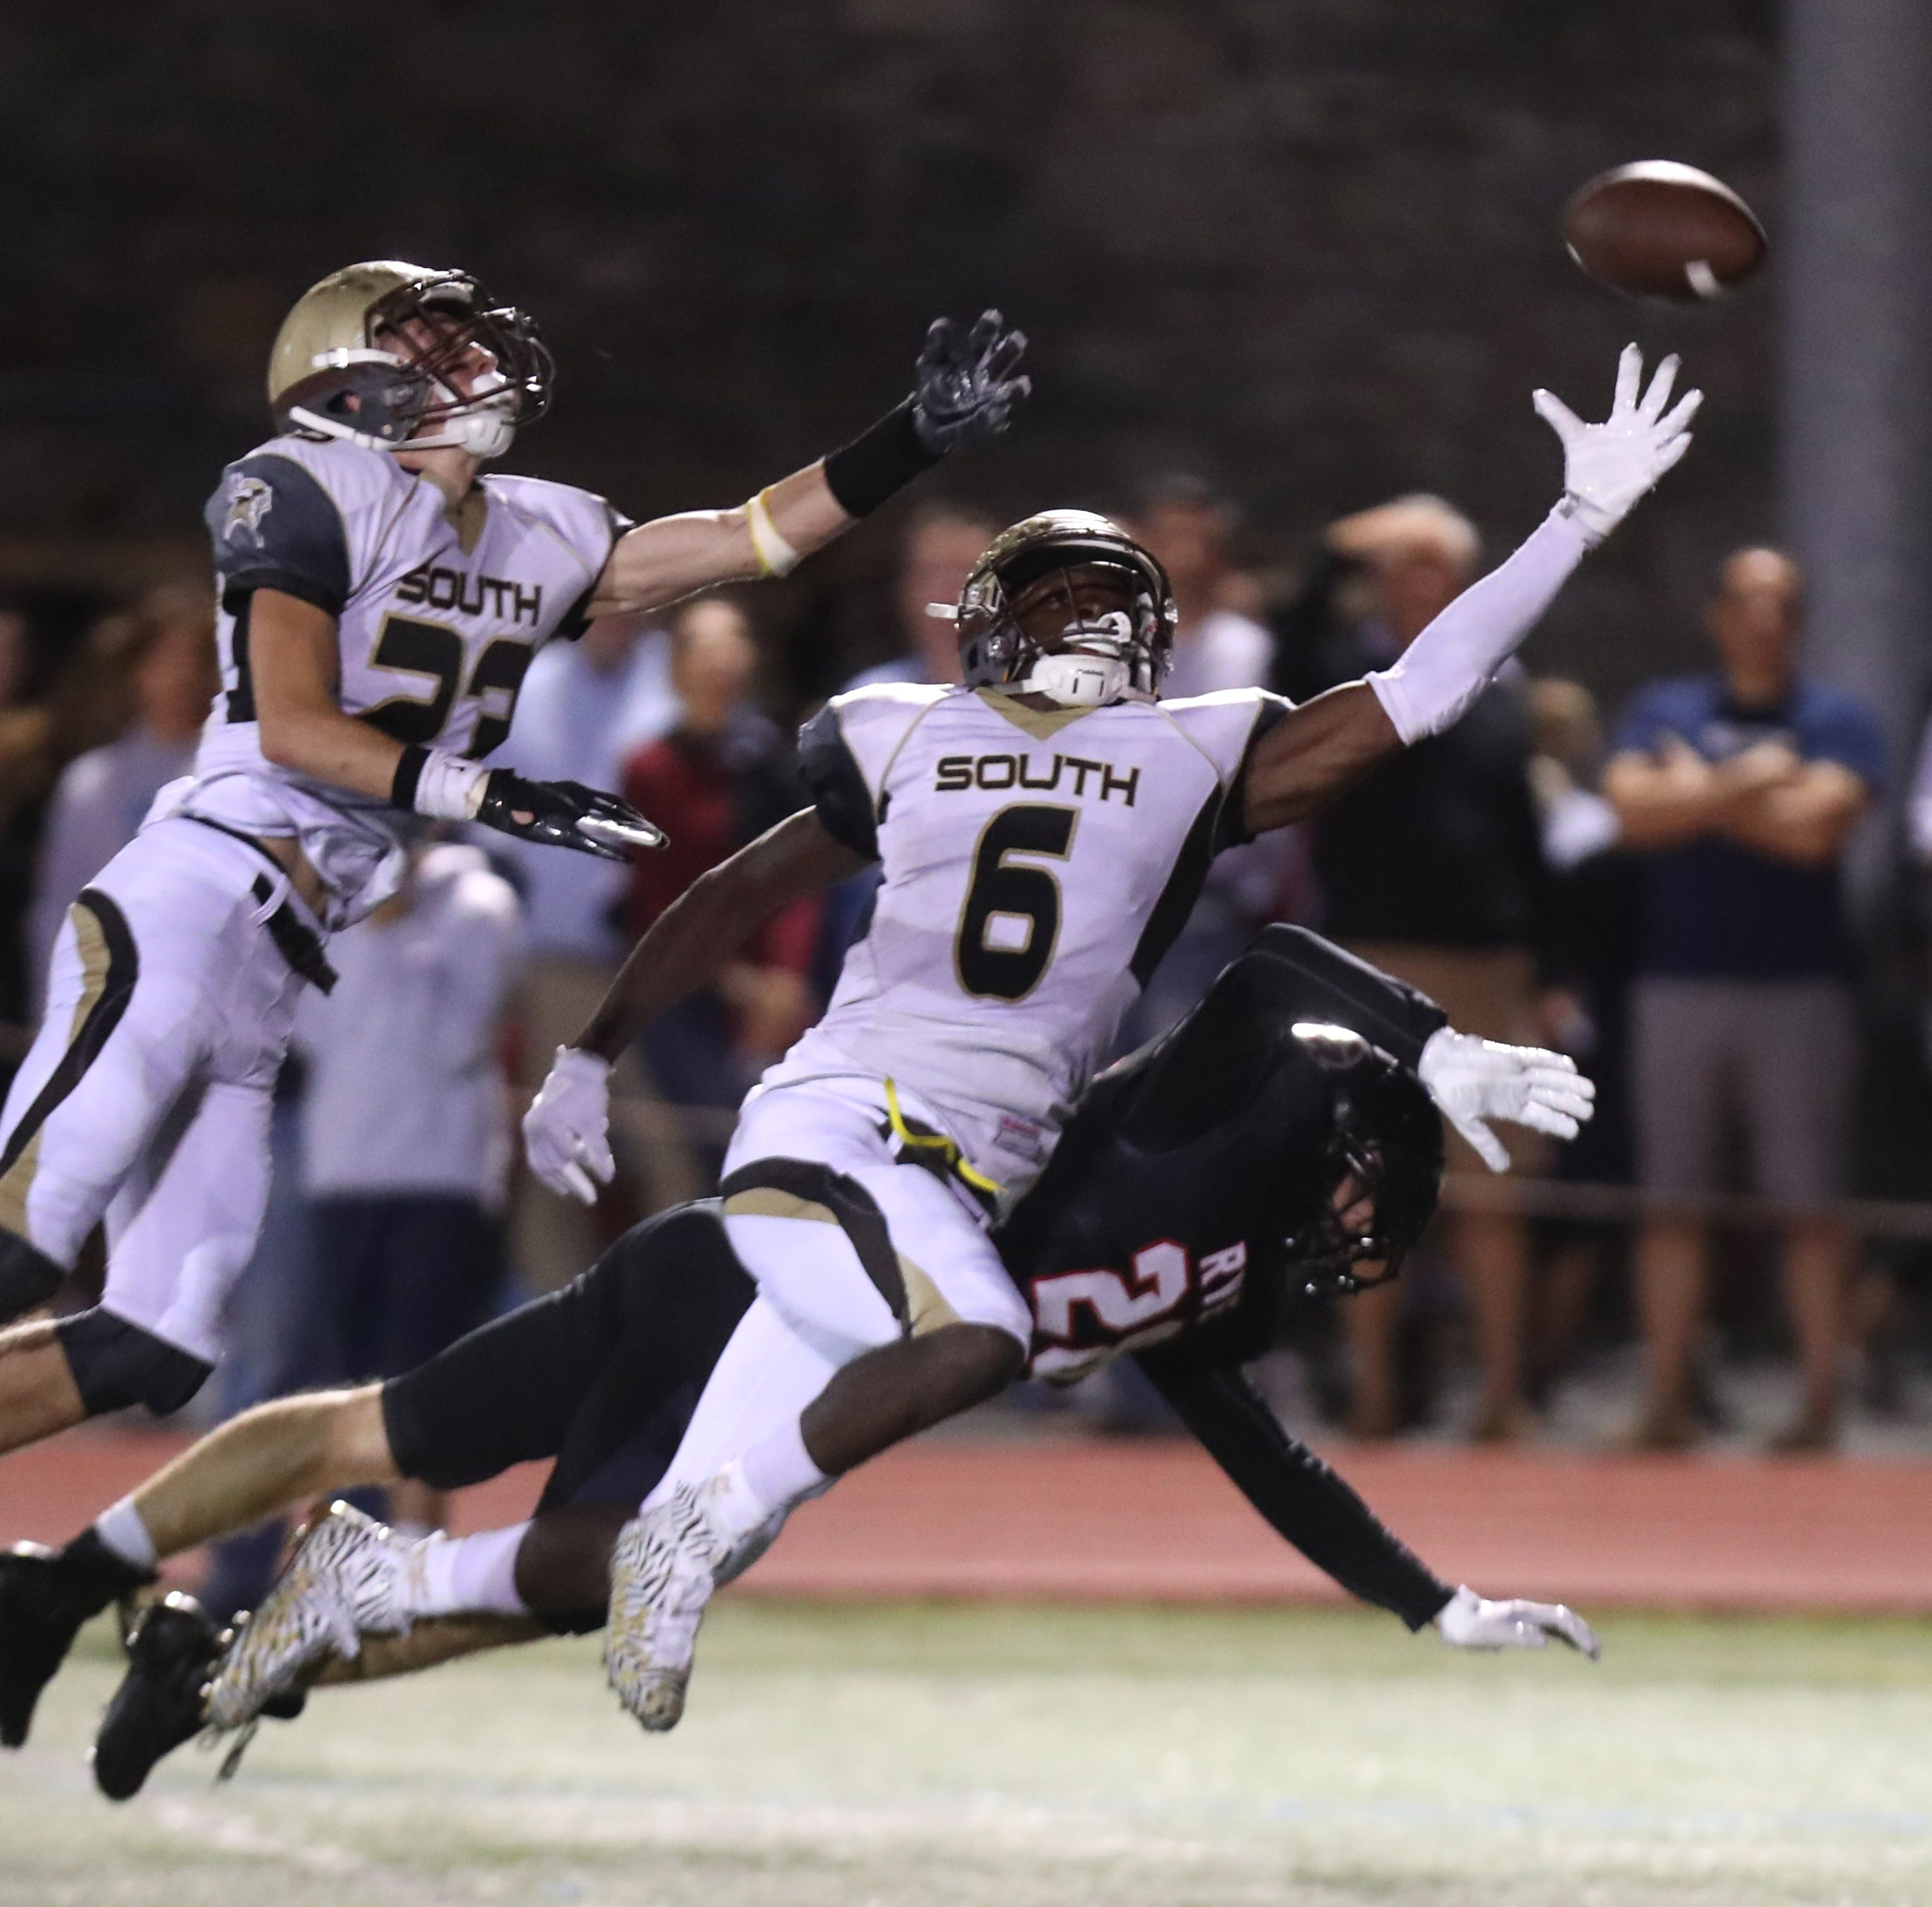 Football: Clarkstown South undeterred, rolls past Rye 49-28